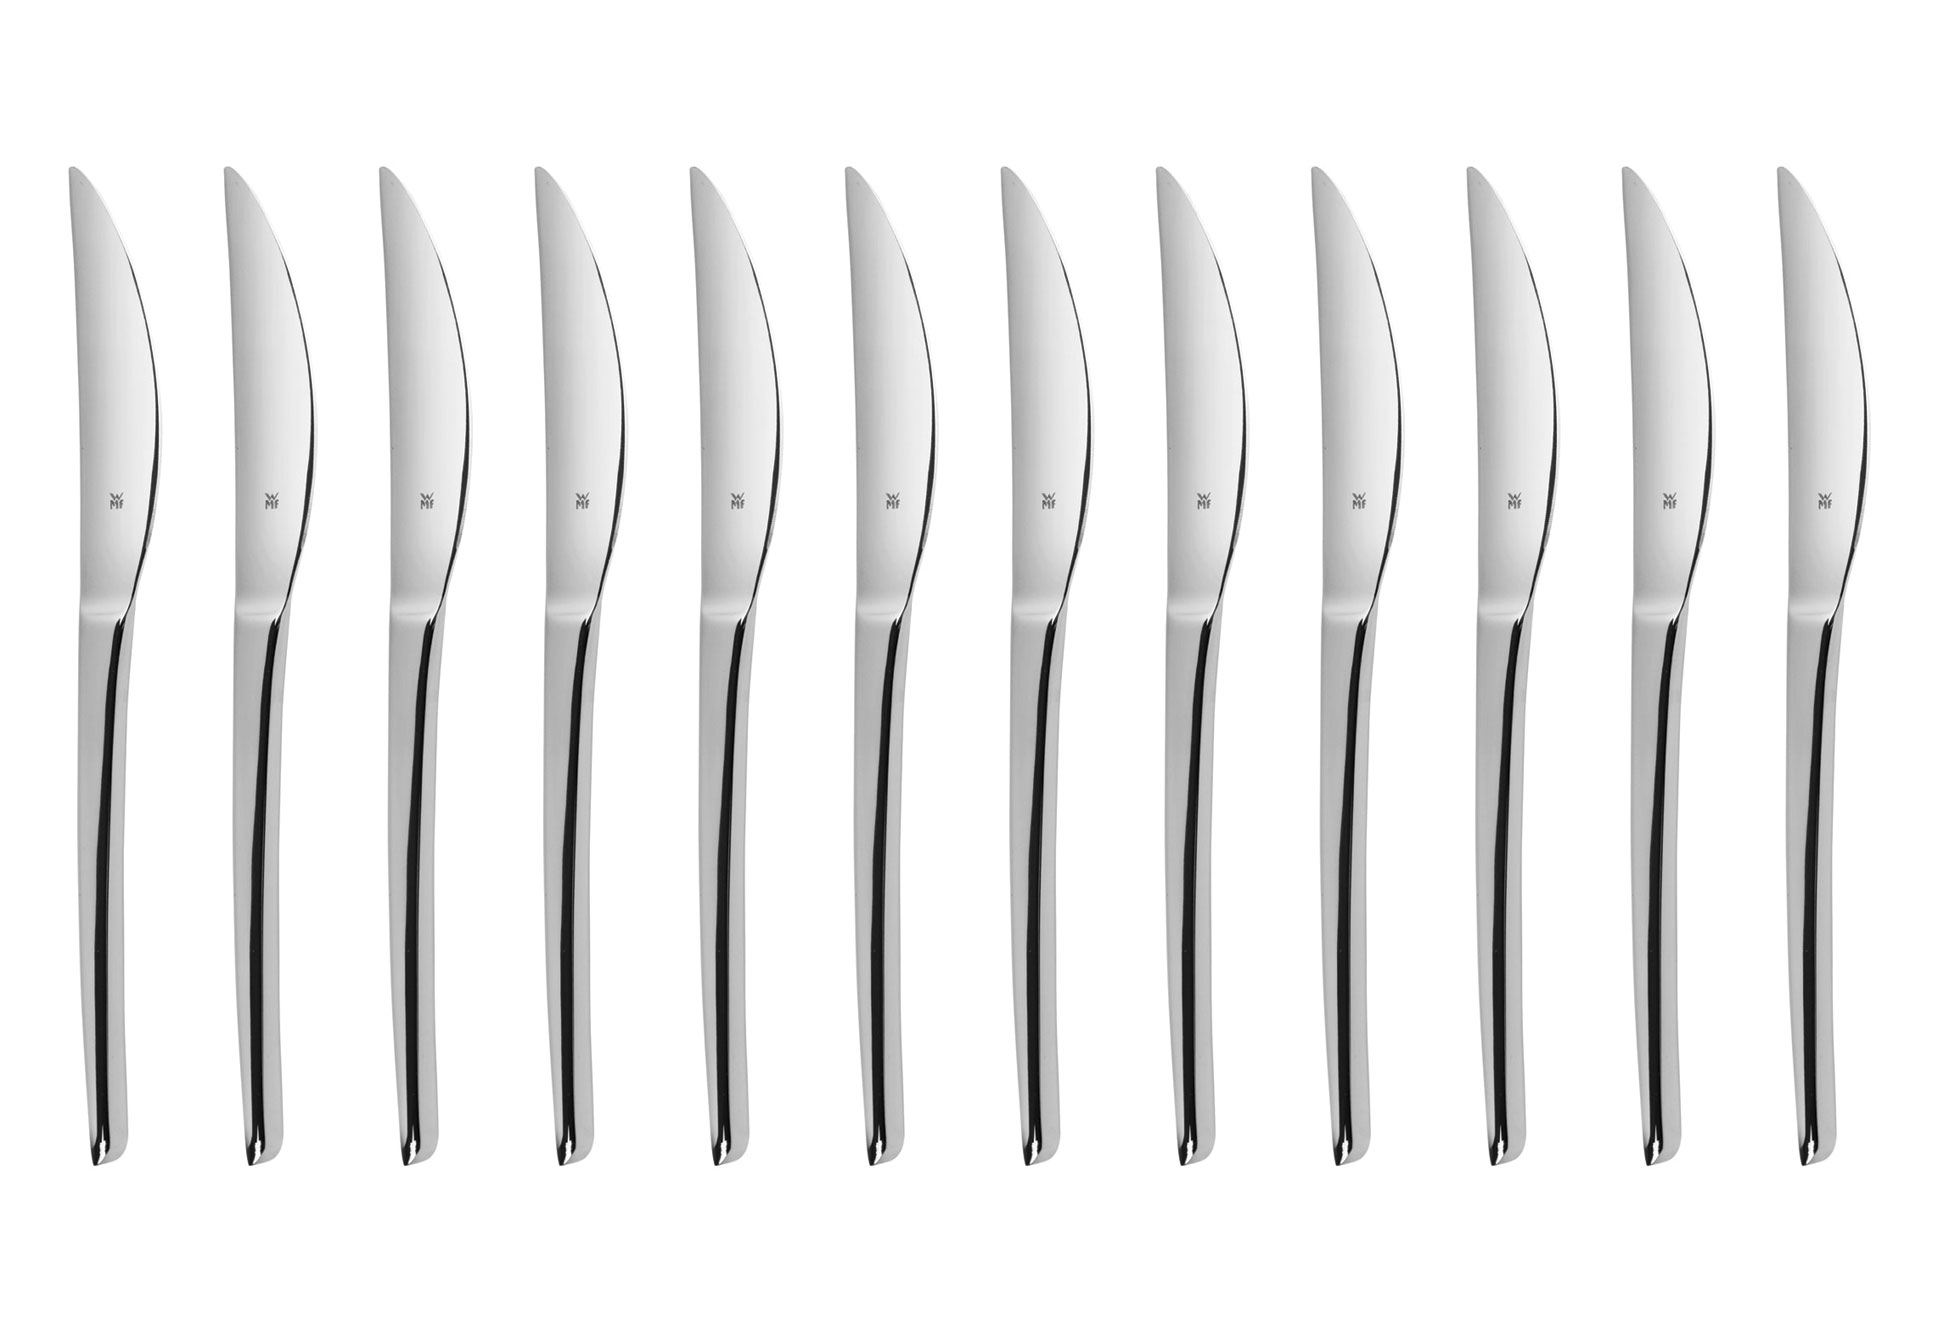 wmf nordic stainless steel flatware set 72 piece cutlery and more